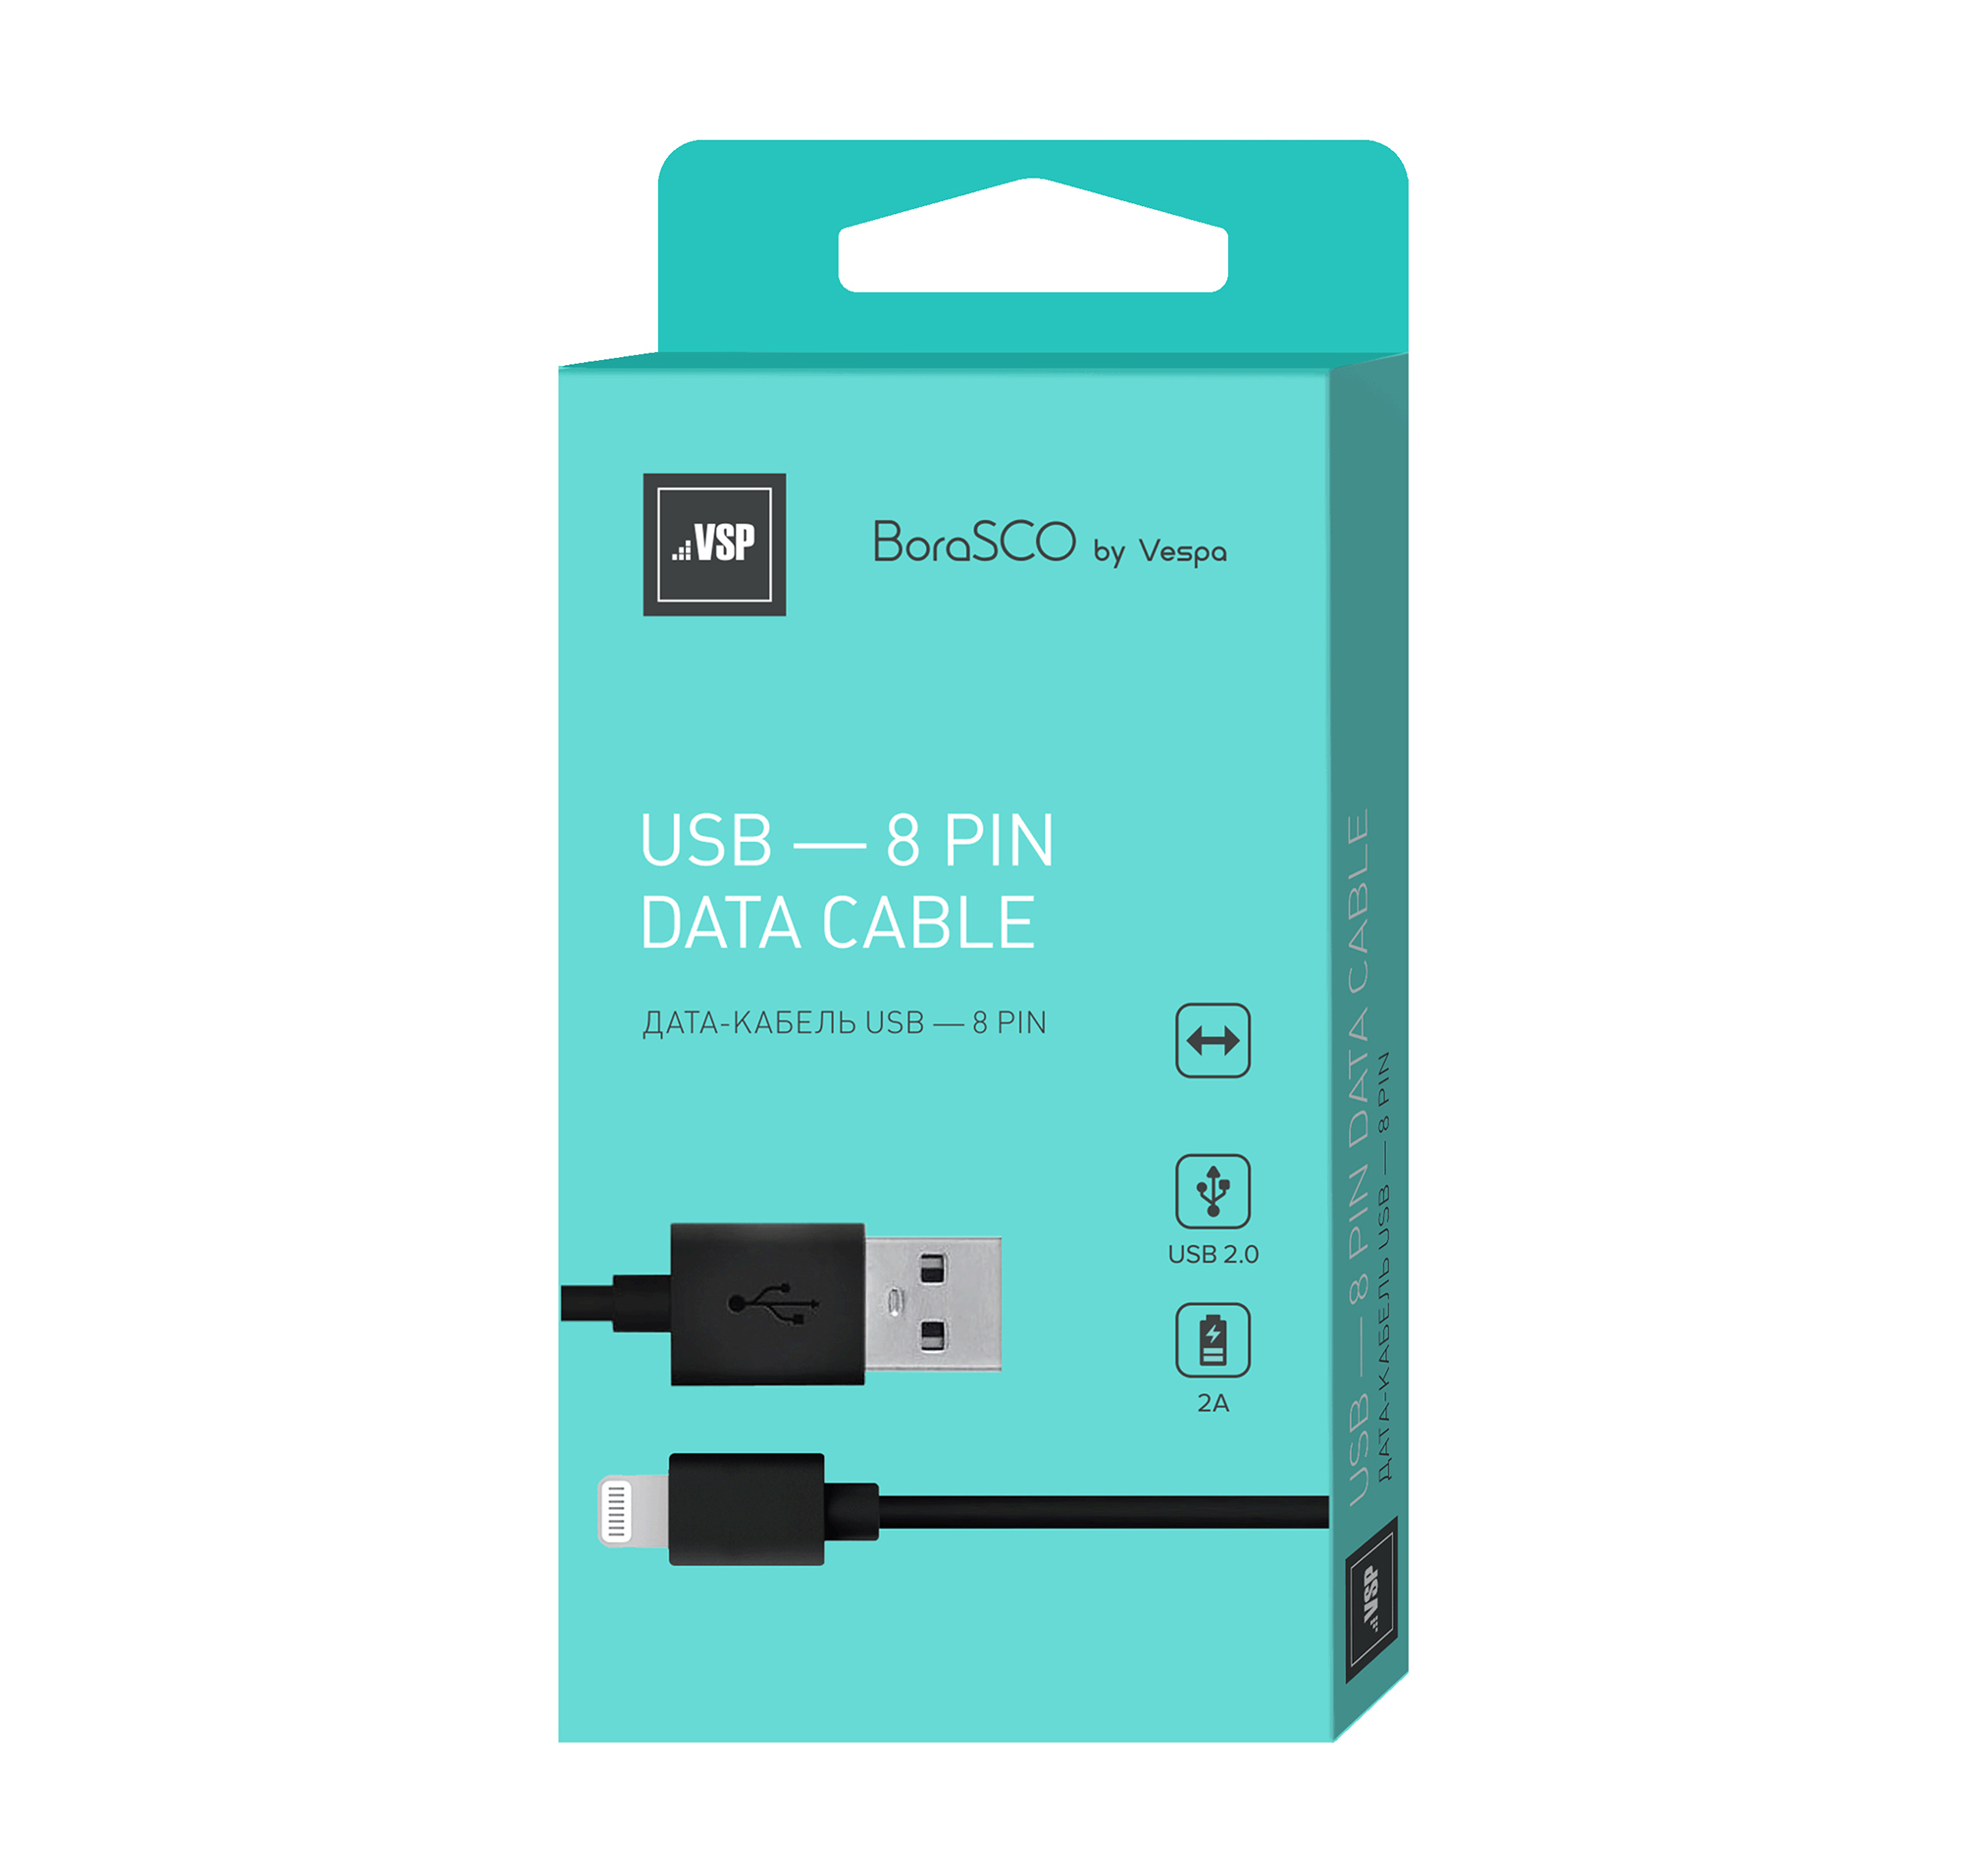 Фото - Дата-кабель BoraSCO USB - 8 pin, 2А, 3м, черный кабель borasco usb type c 2а 3м черный